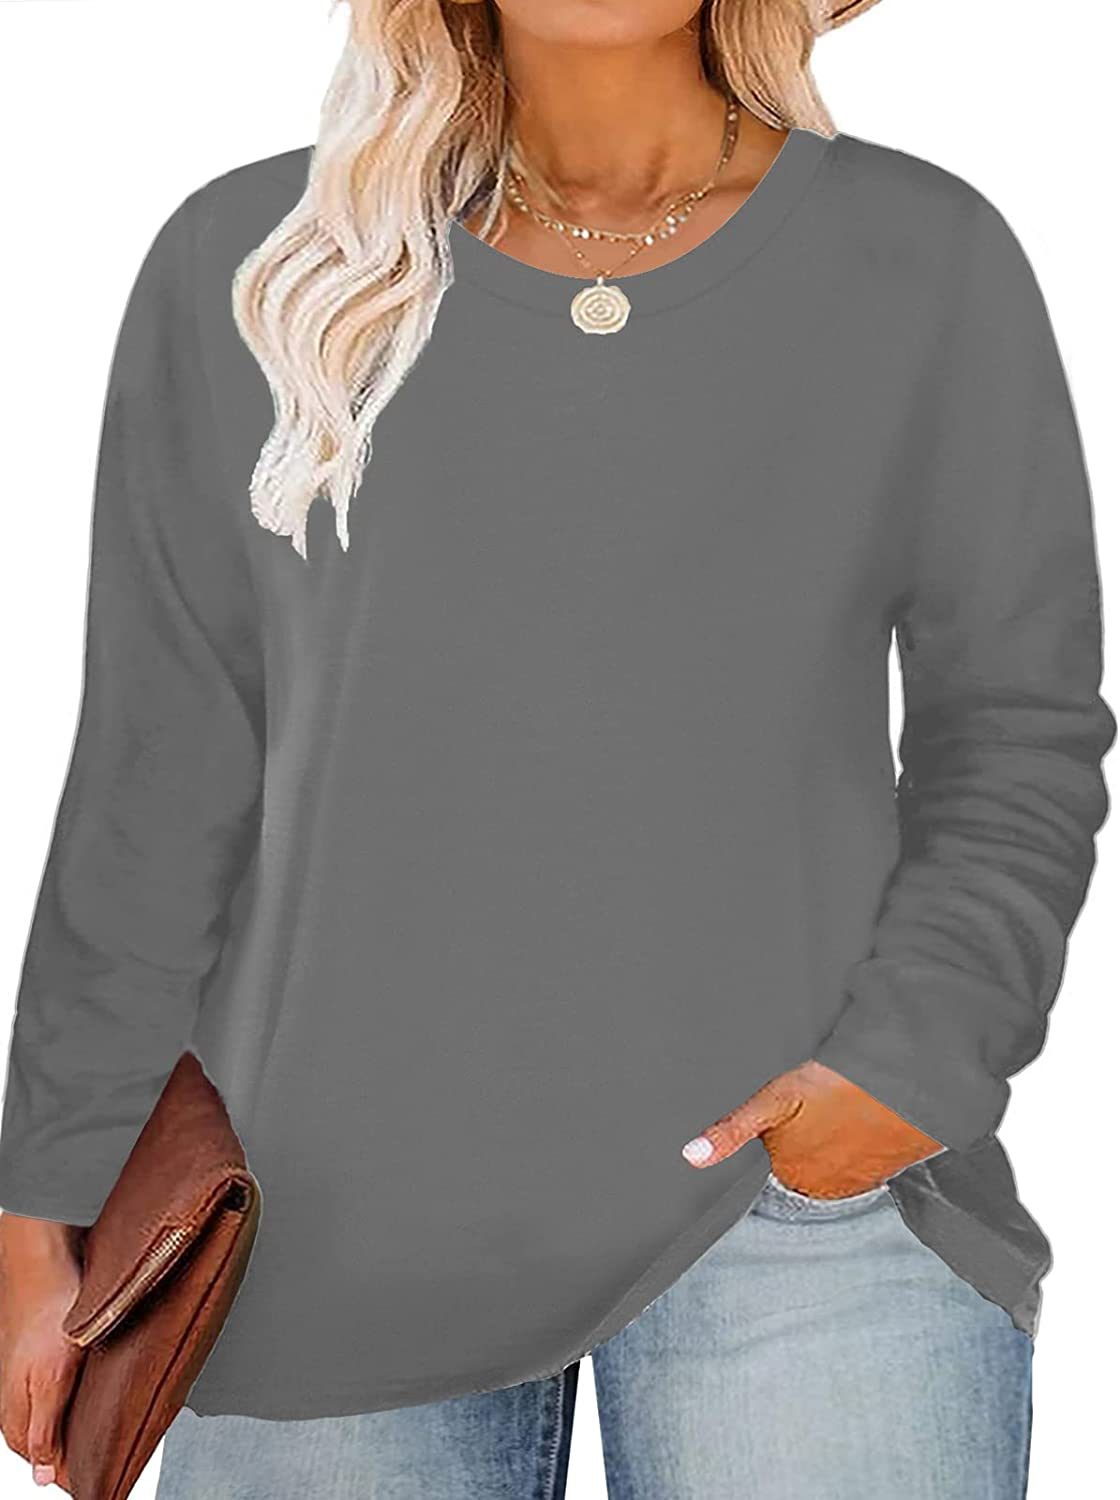 VISLILY Plus-Size Tops for Women Long Sleeve Casual Loose Shirts